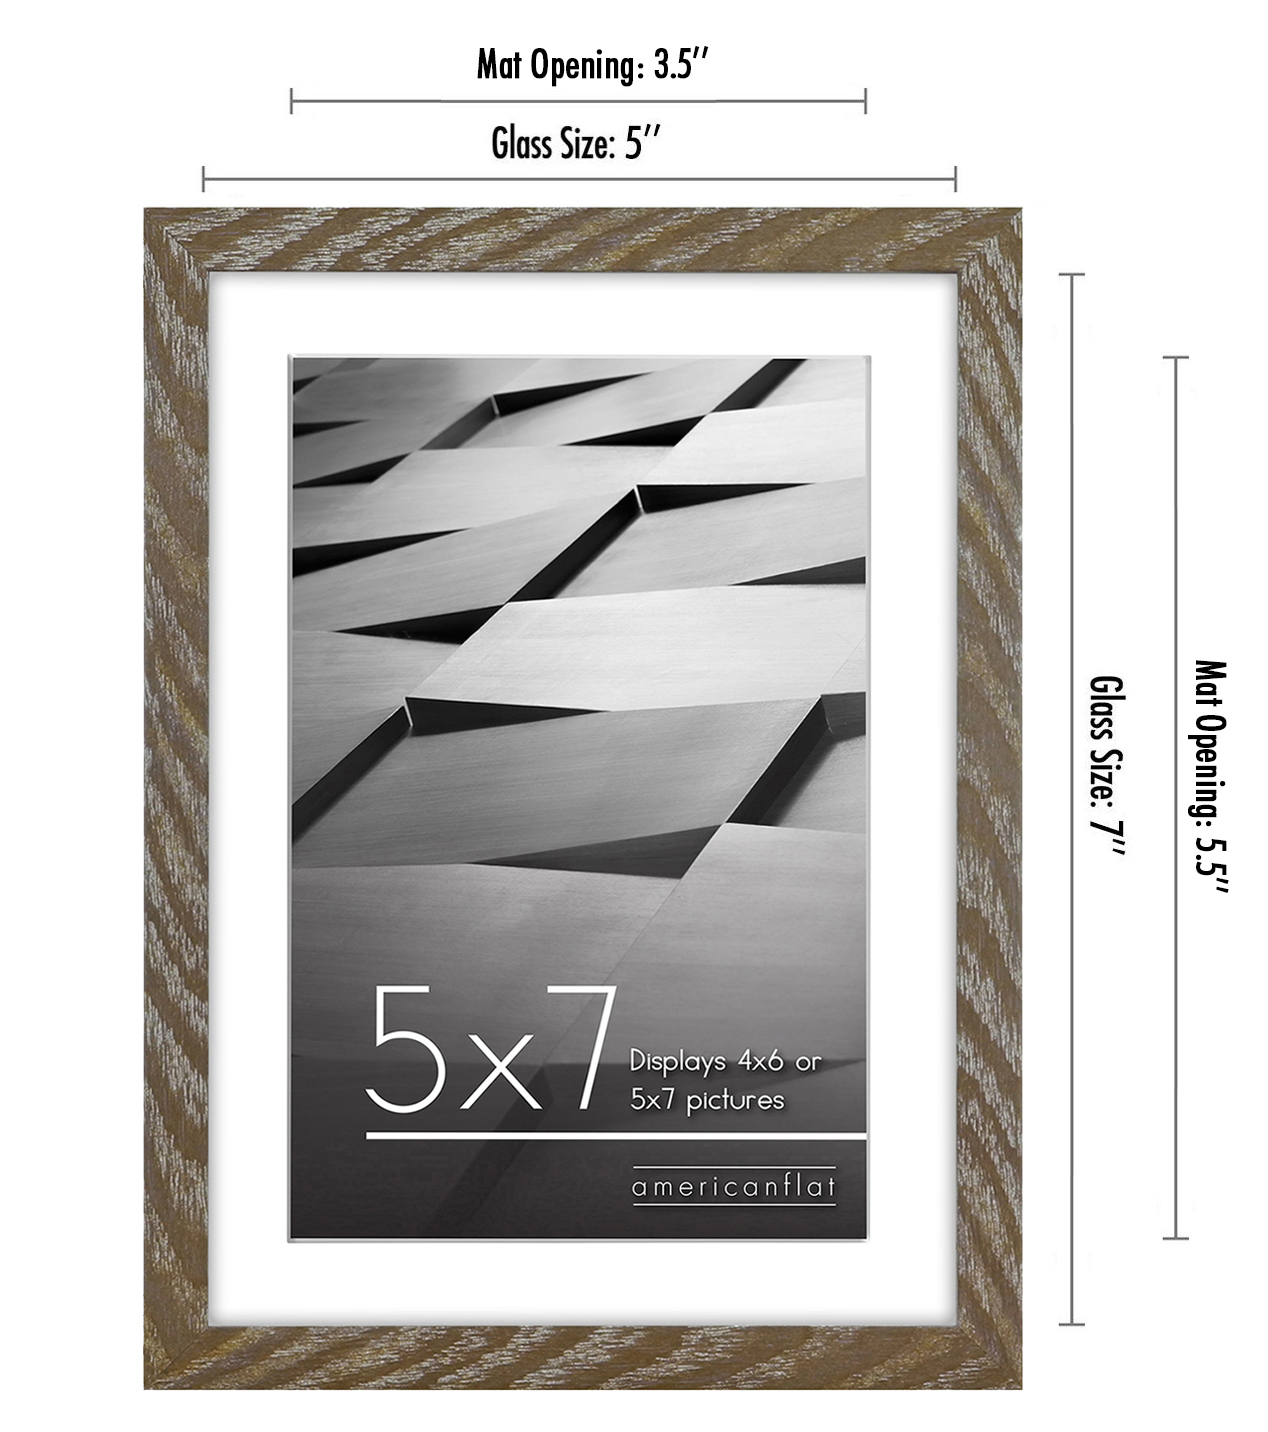 miniature 15 - Americanflat Thin Picture Frame 5x7 8x10 11x14 8.5x11 Wall Tabletop Pick Color